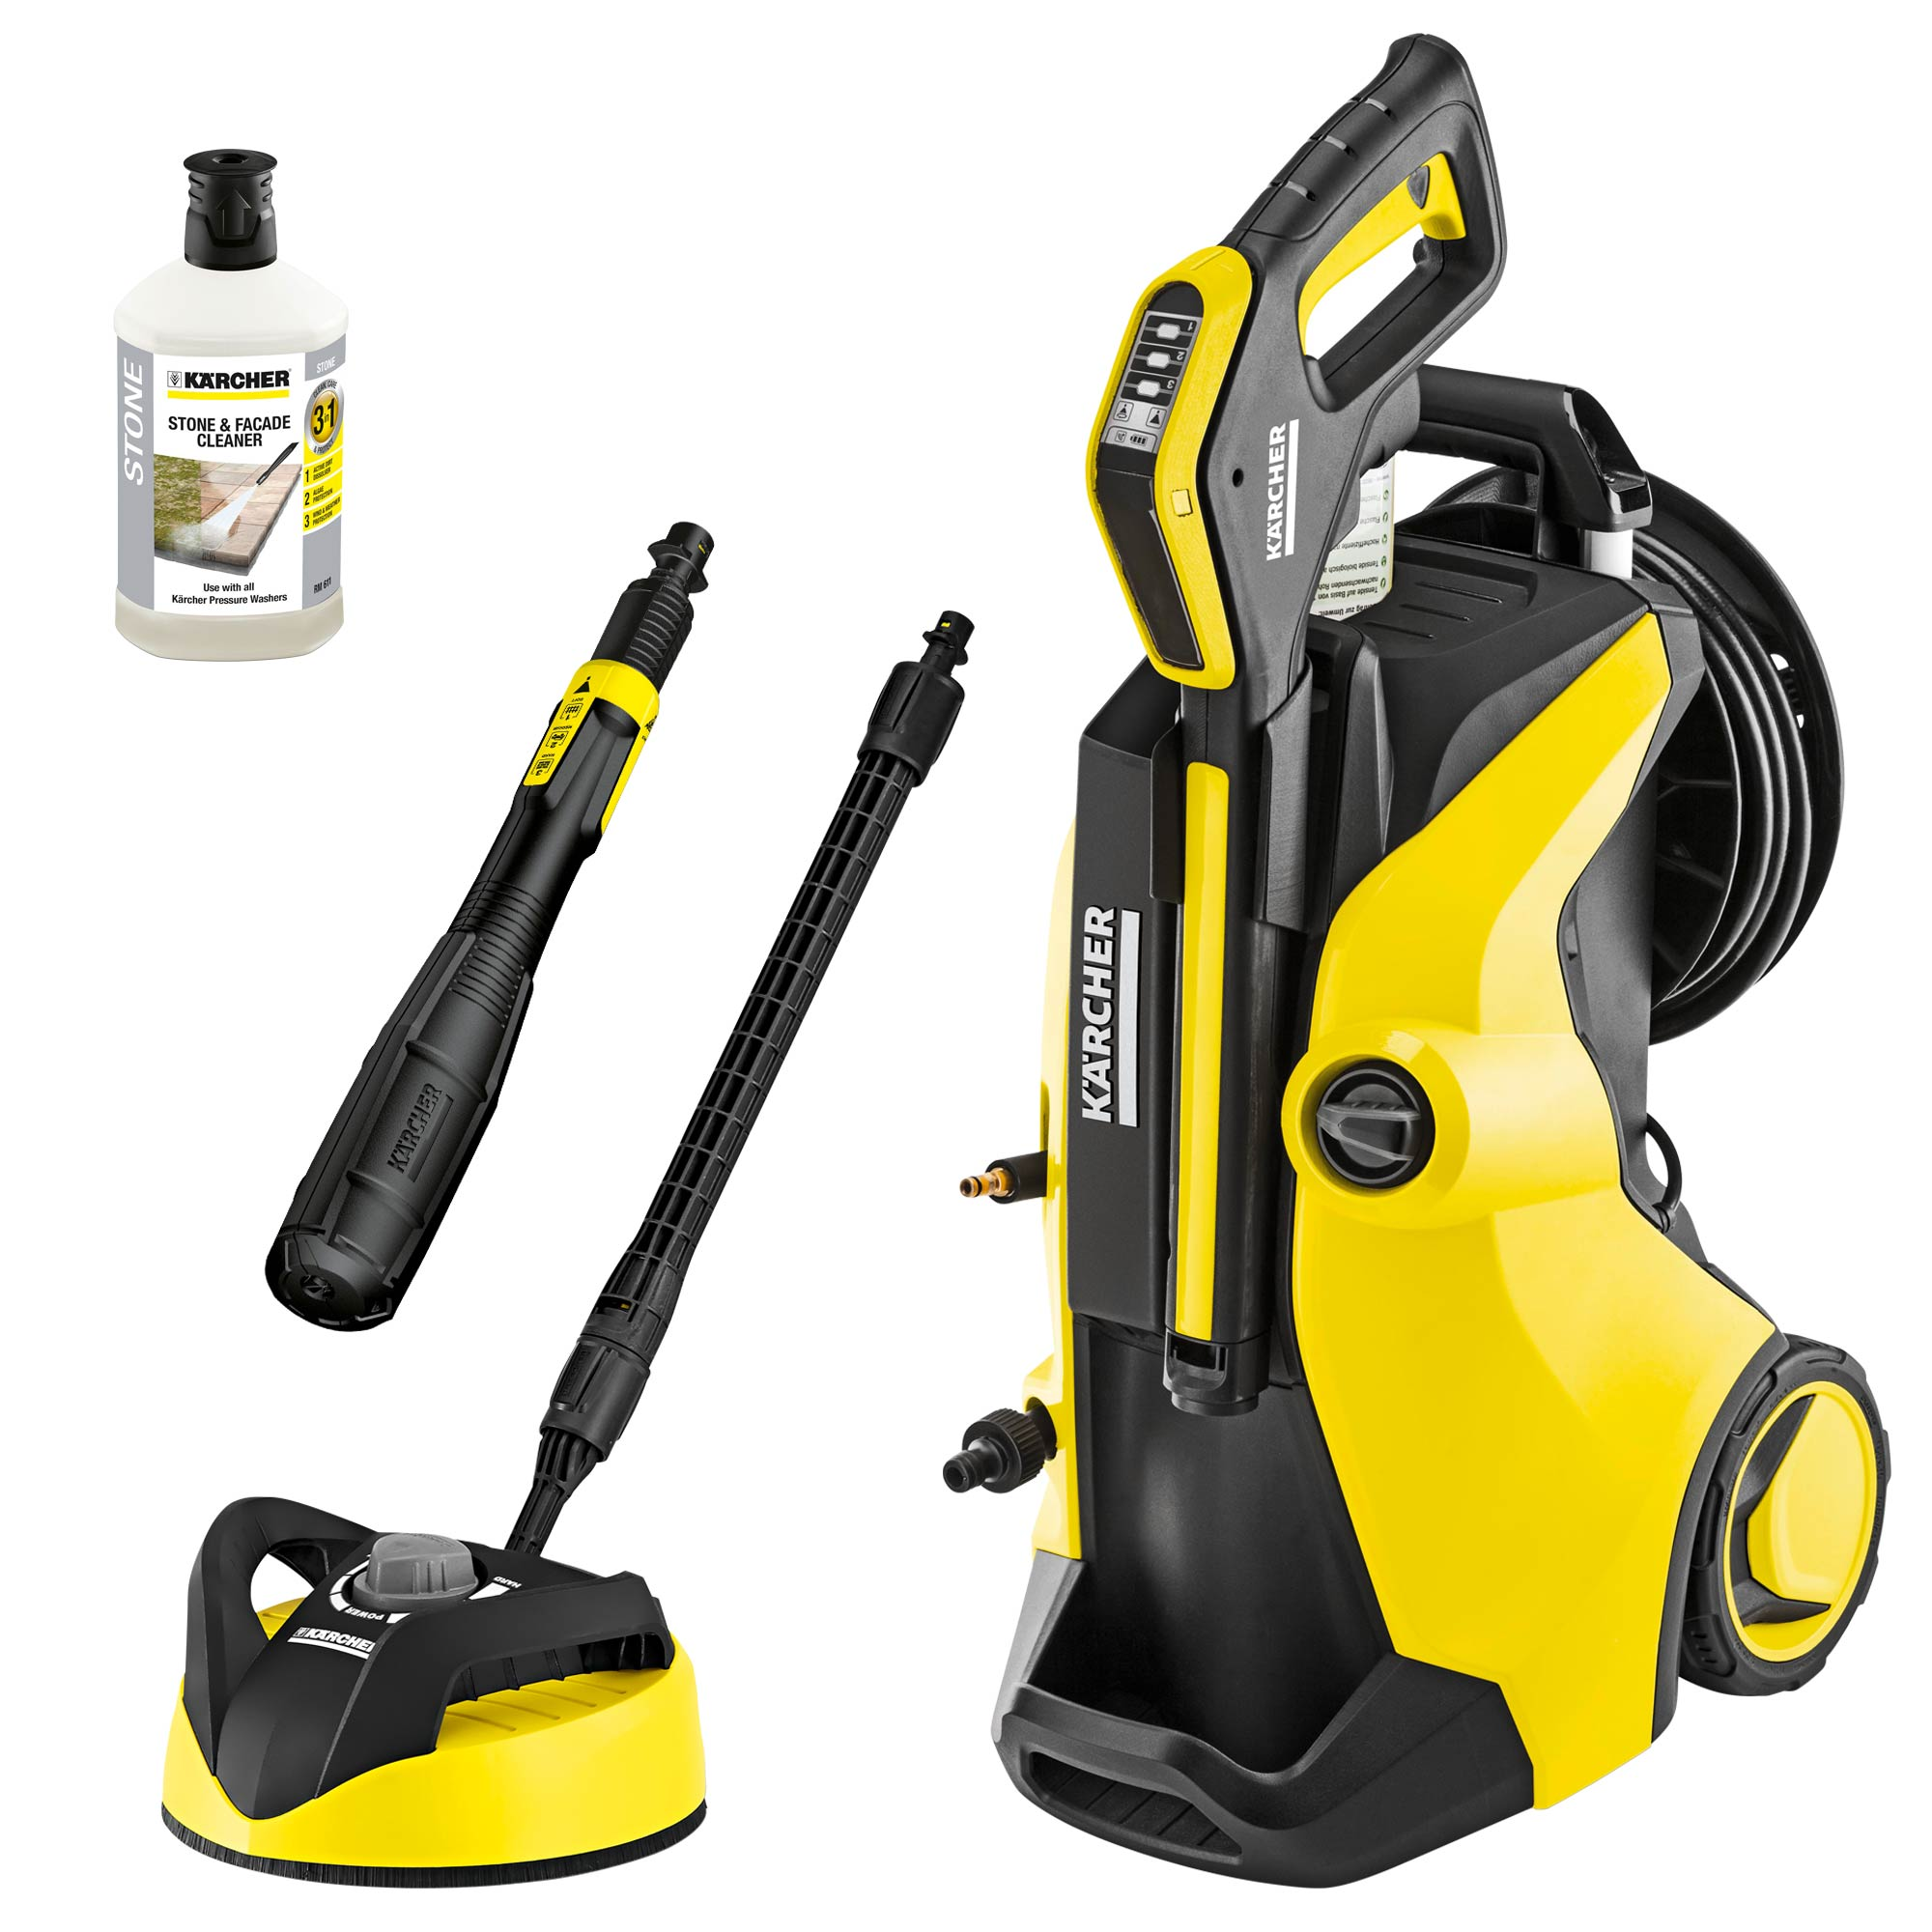 Karcher 13246350 karcher k5 premium full control plus home - Karcher k5 full control ...